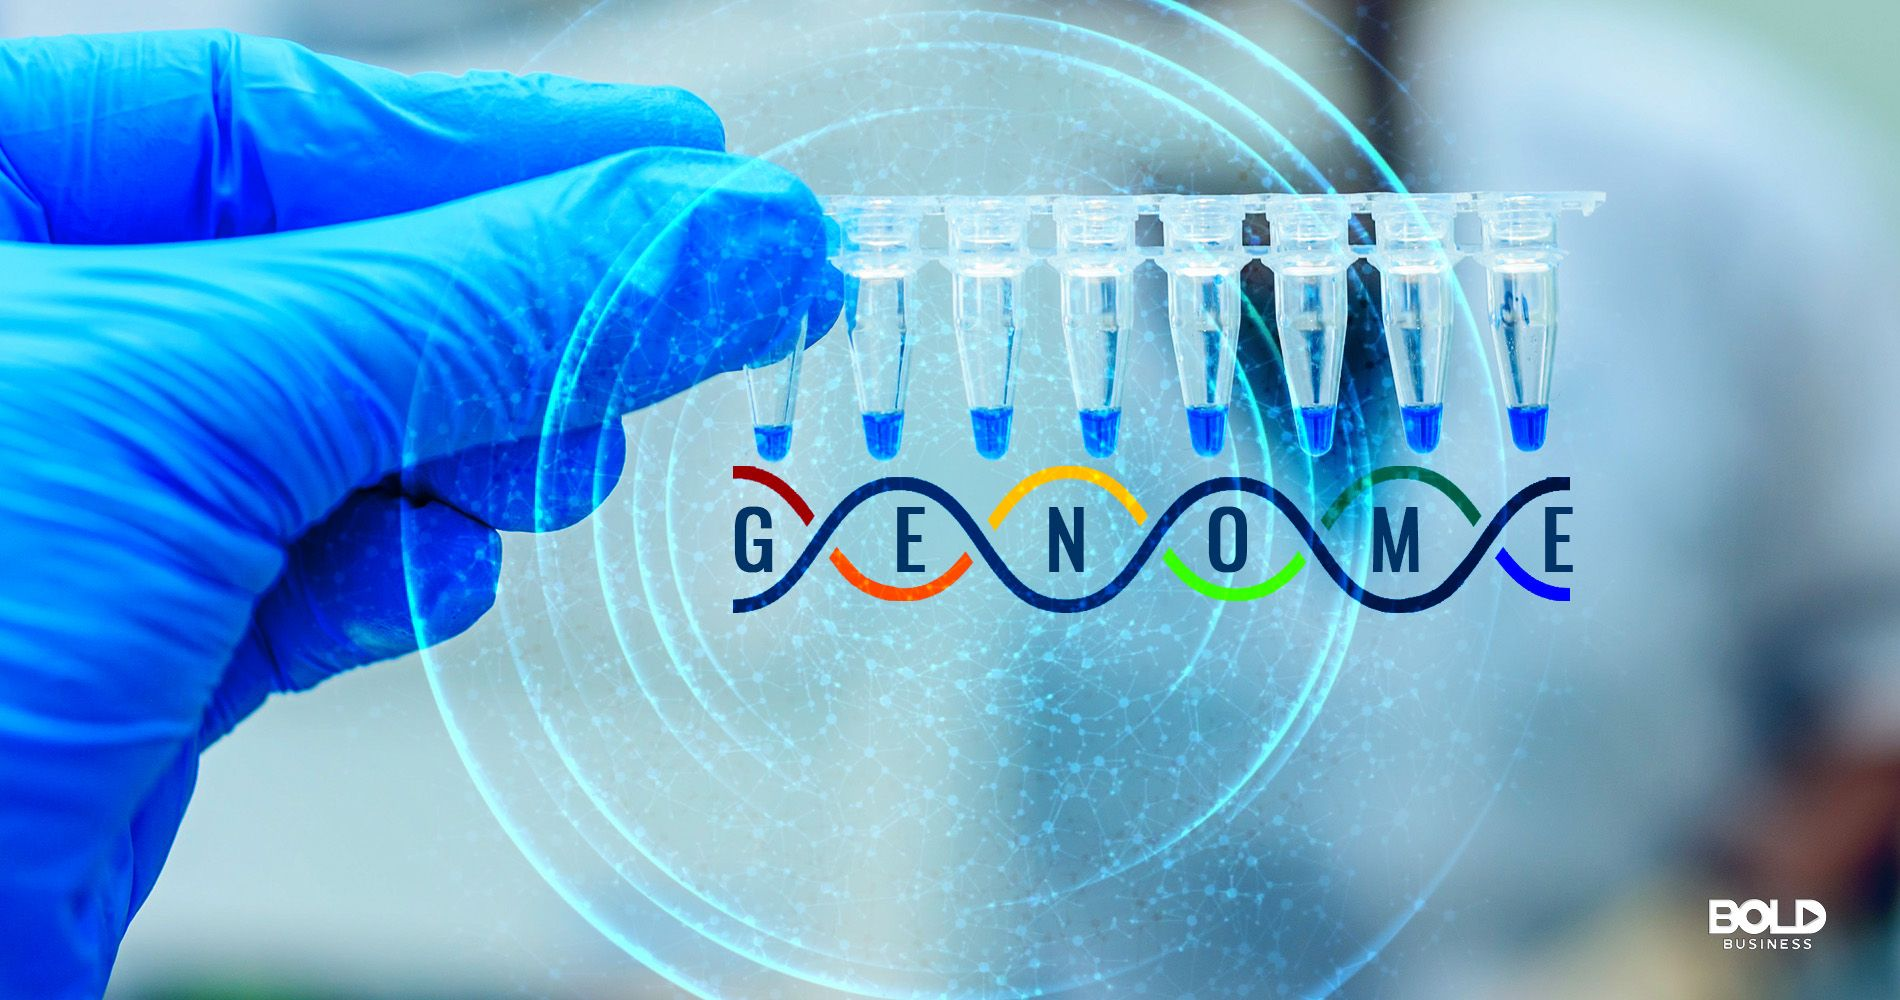 image featuring of genome sample testing and DNA strands